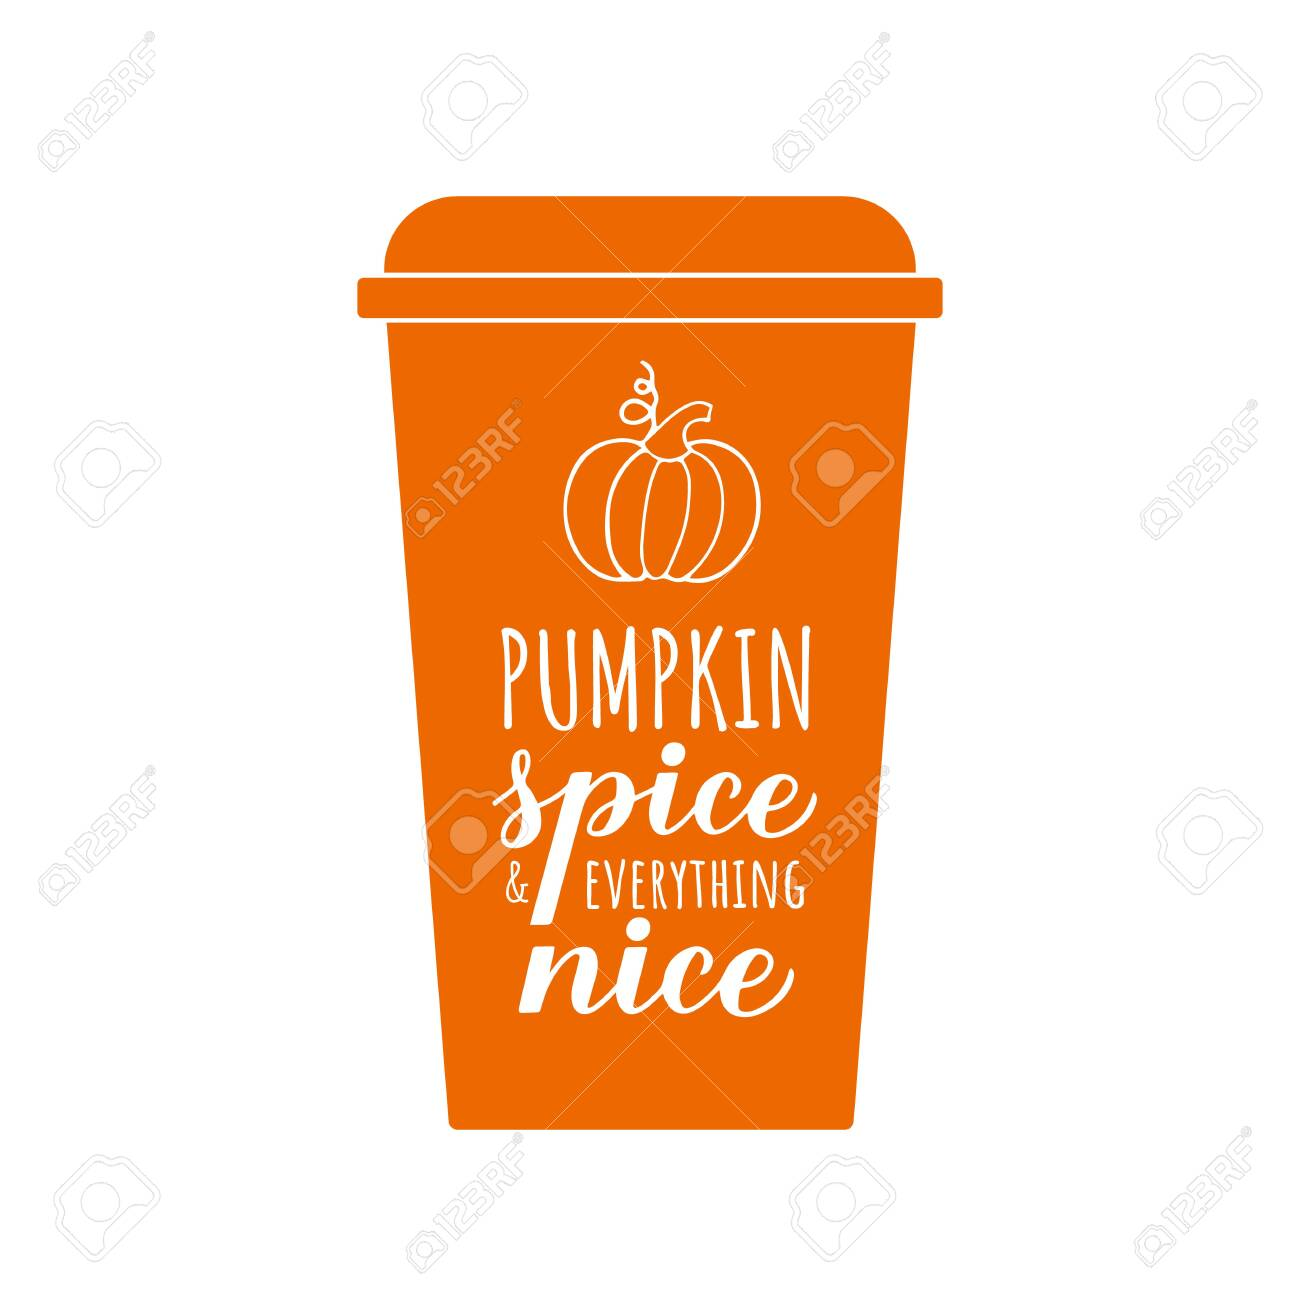 Pumpkin Spice and Everything Nice calligraphy hand lettering on coffee cup. Inspirational autumn quote typography poster. Vector template for fall decorations, banner, card, flyer, t-shirt, etc. - 156795539